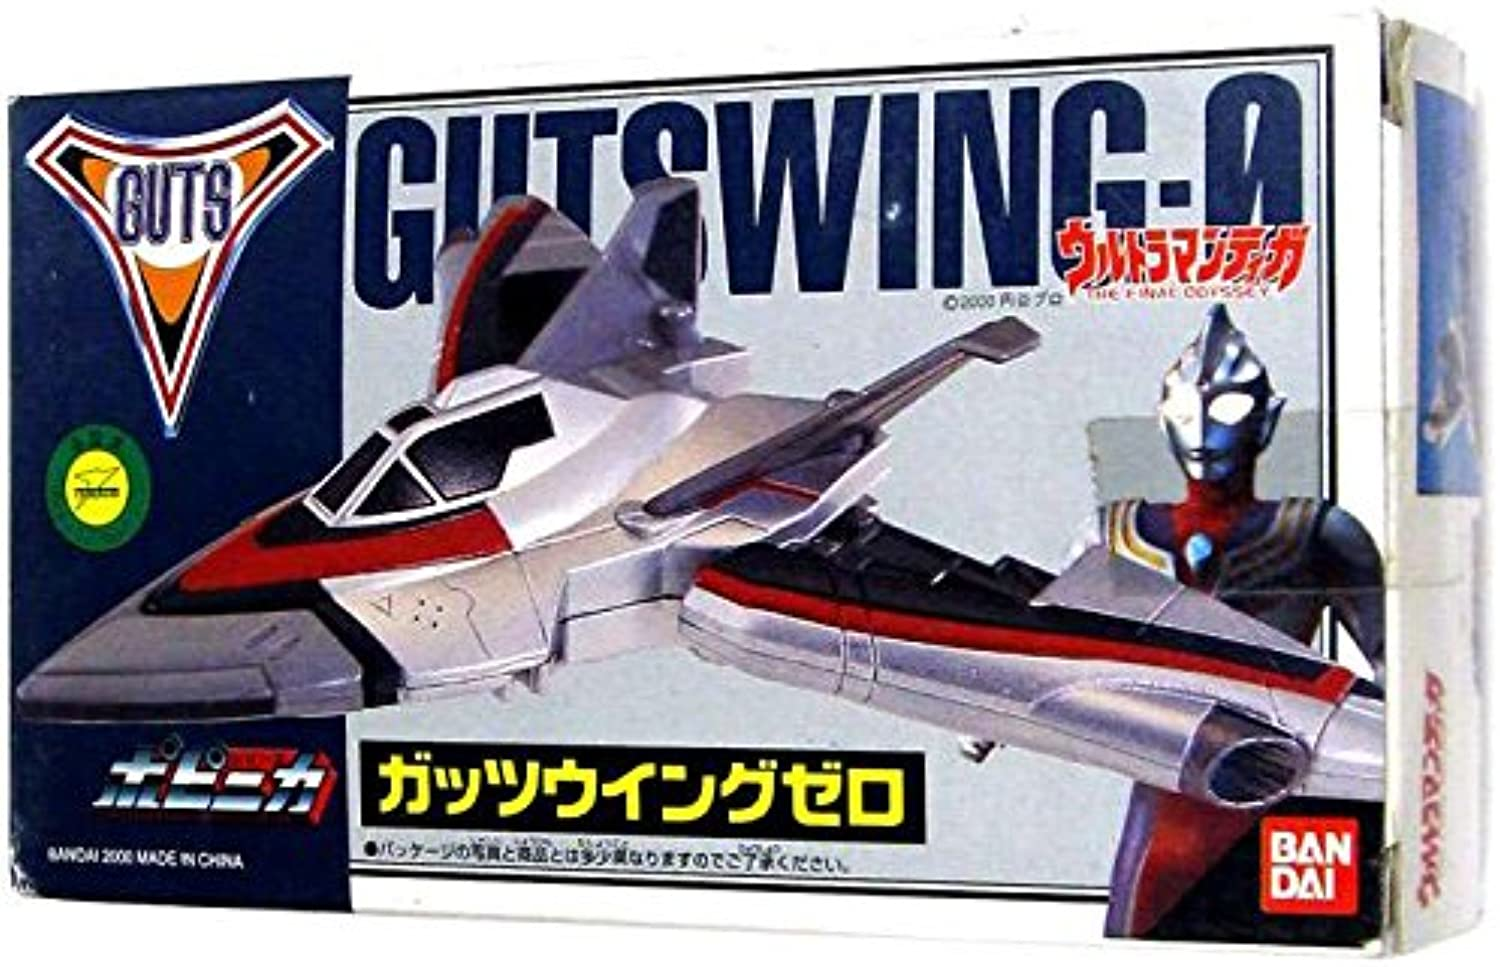 Ultraman Tiga Popynica guts wing zero [Toy] (Japan import   The package and the manual are written in Japanese)